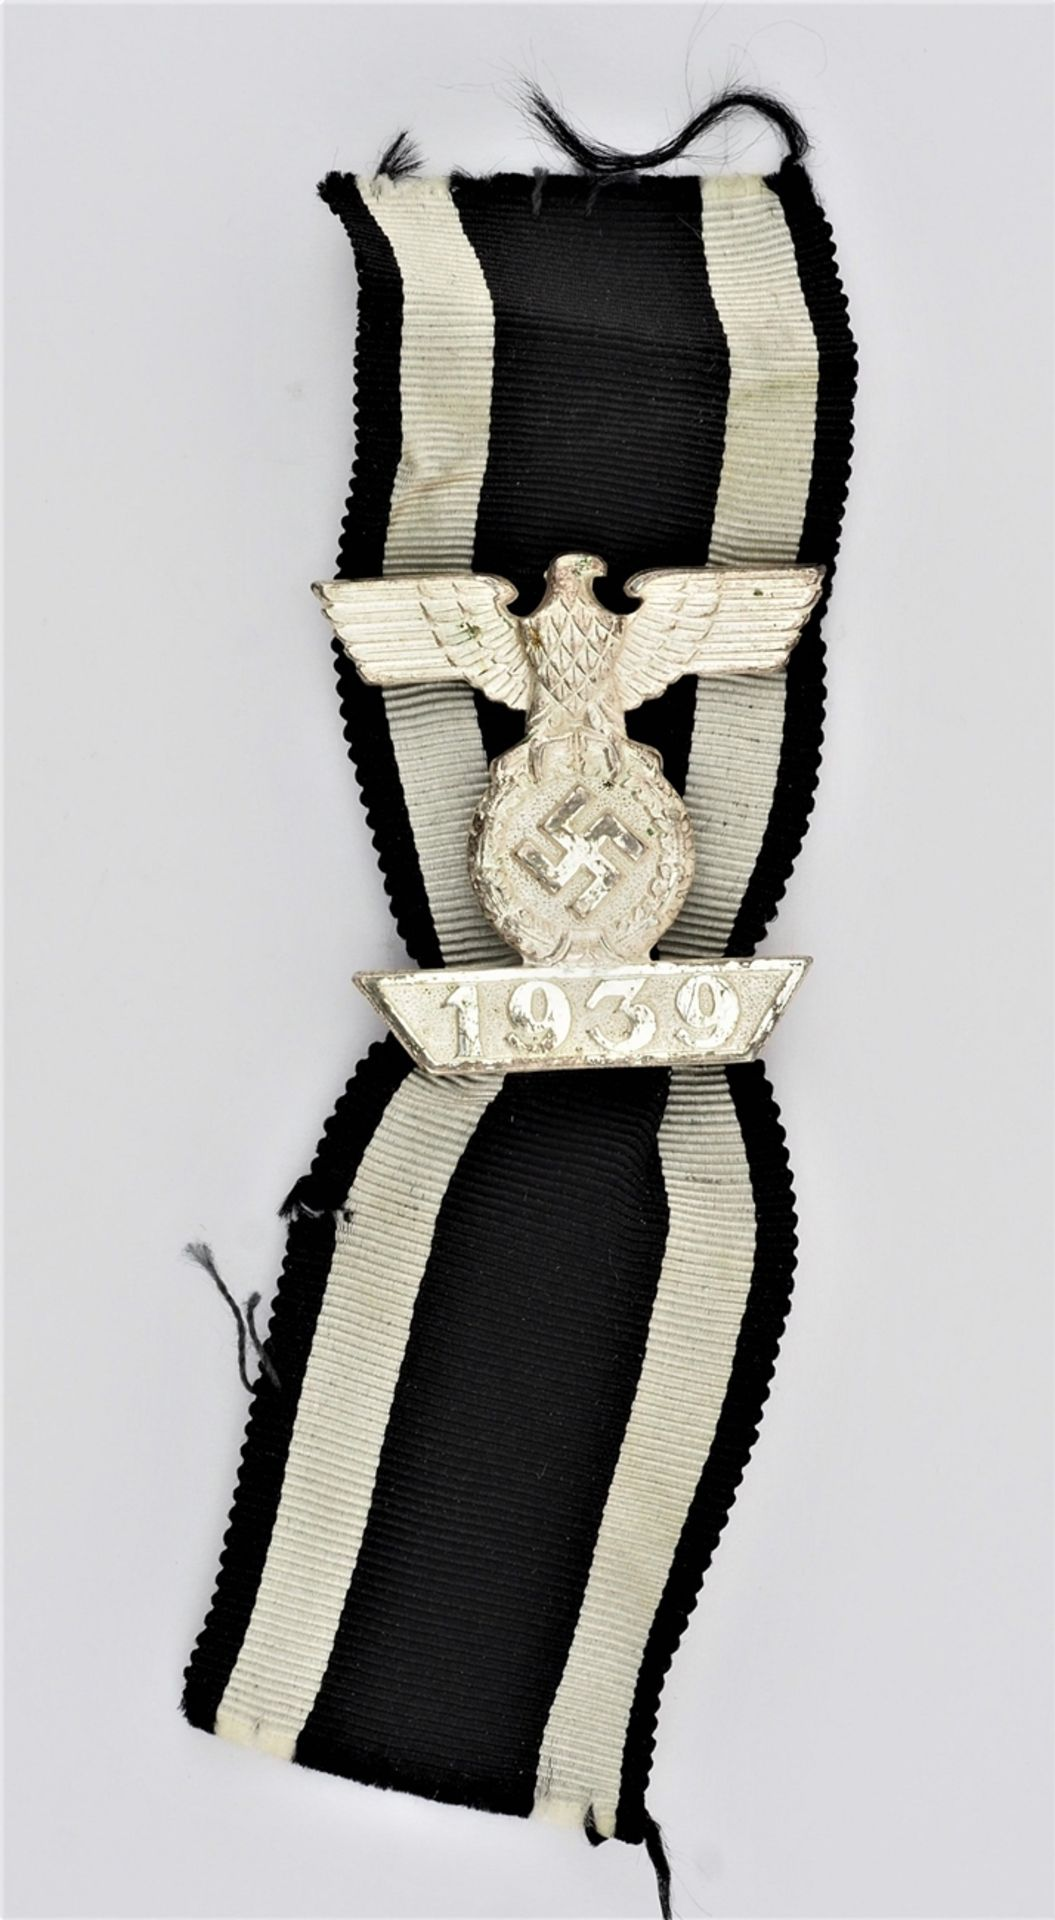 World War 2, Third Reich, Medals & Decorations Legacy: Commanding General of the Luftwaffe (Wehrmac - Image 26 of 27